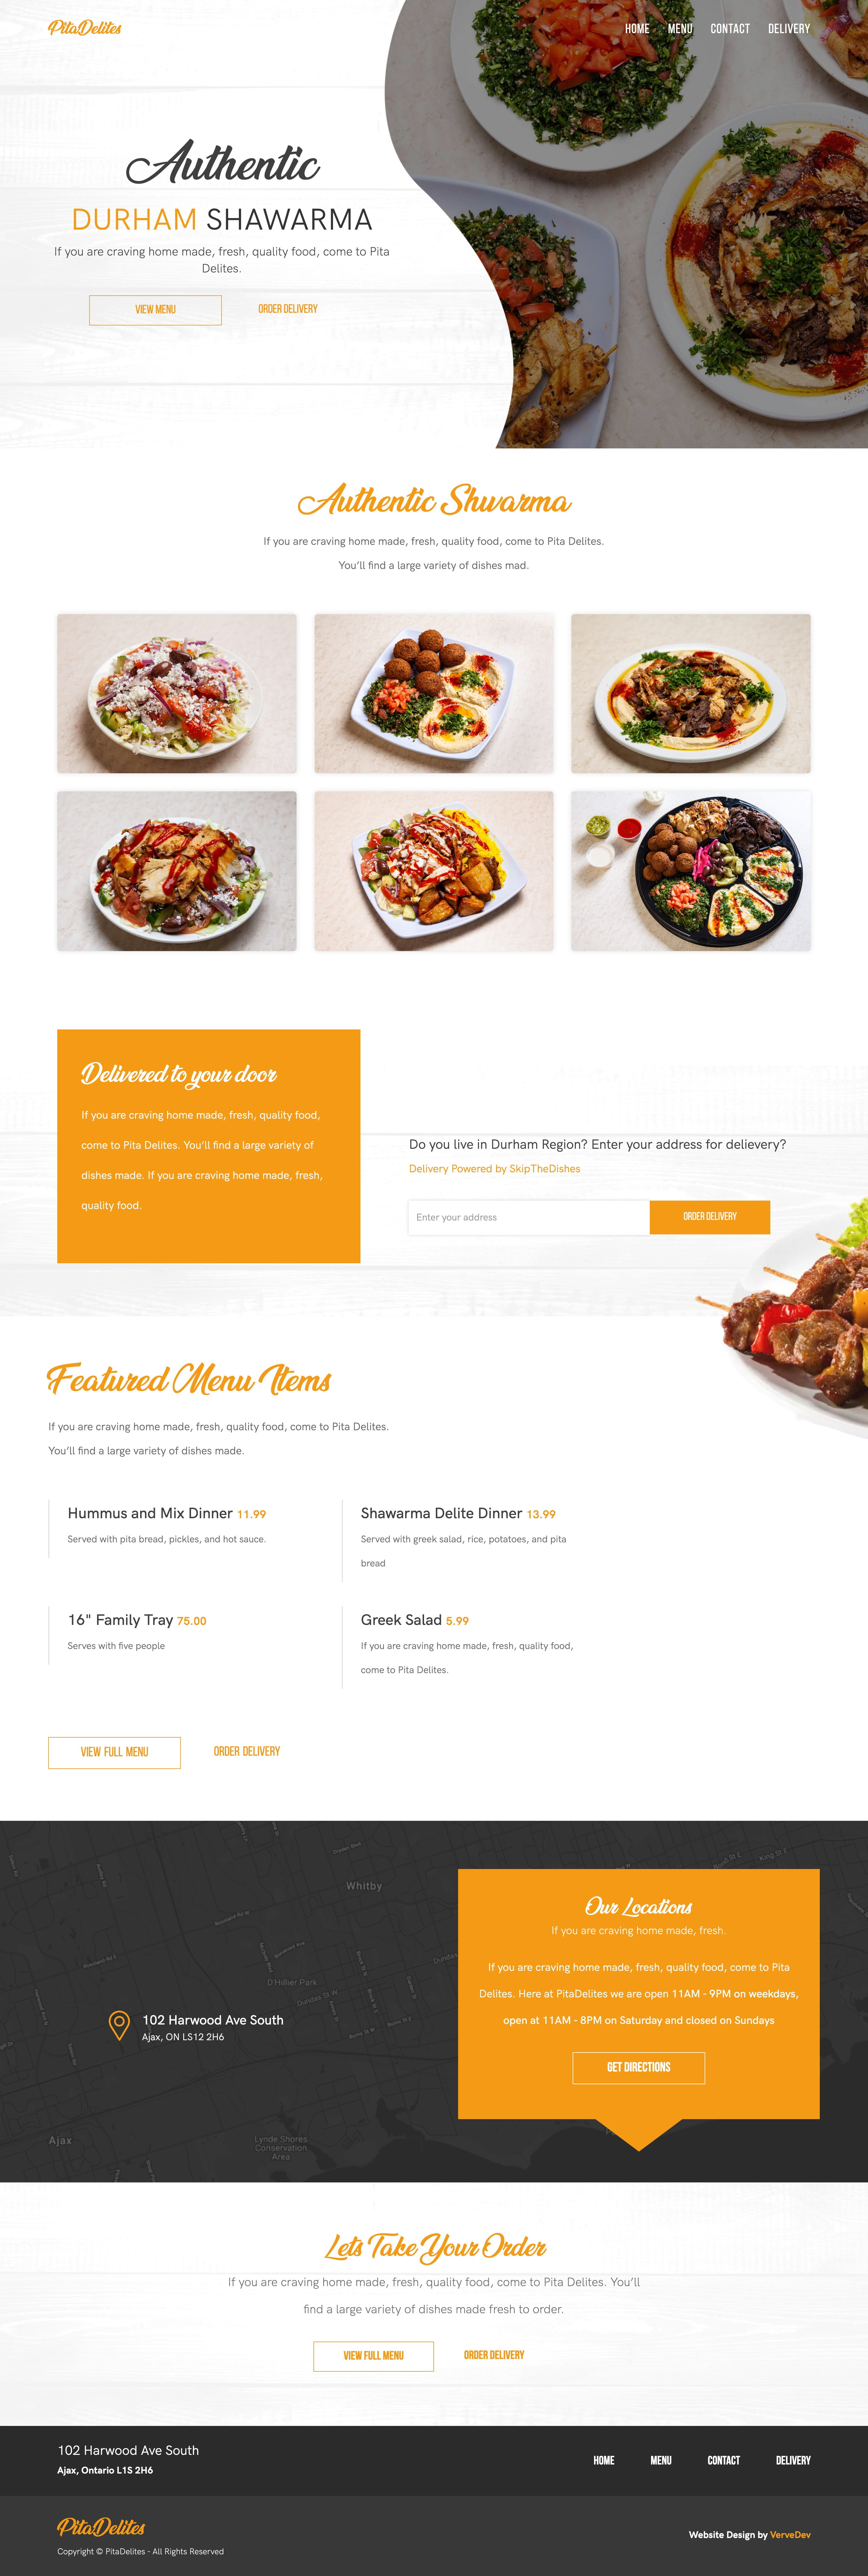 Brampton-website-design-portfolio-1